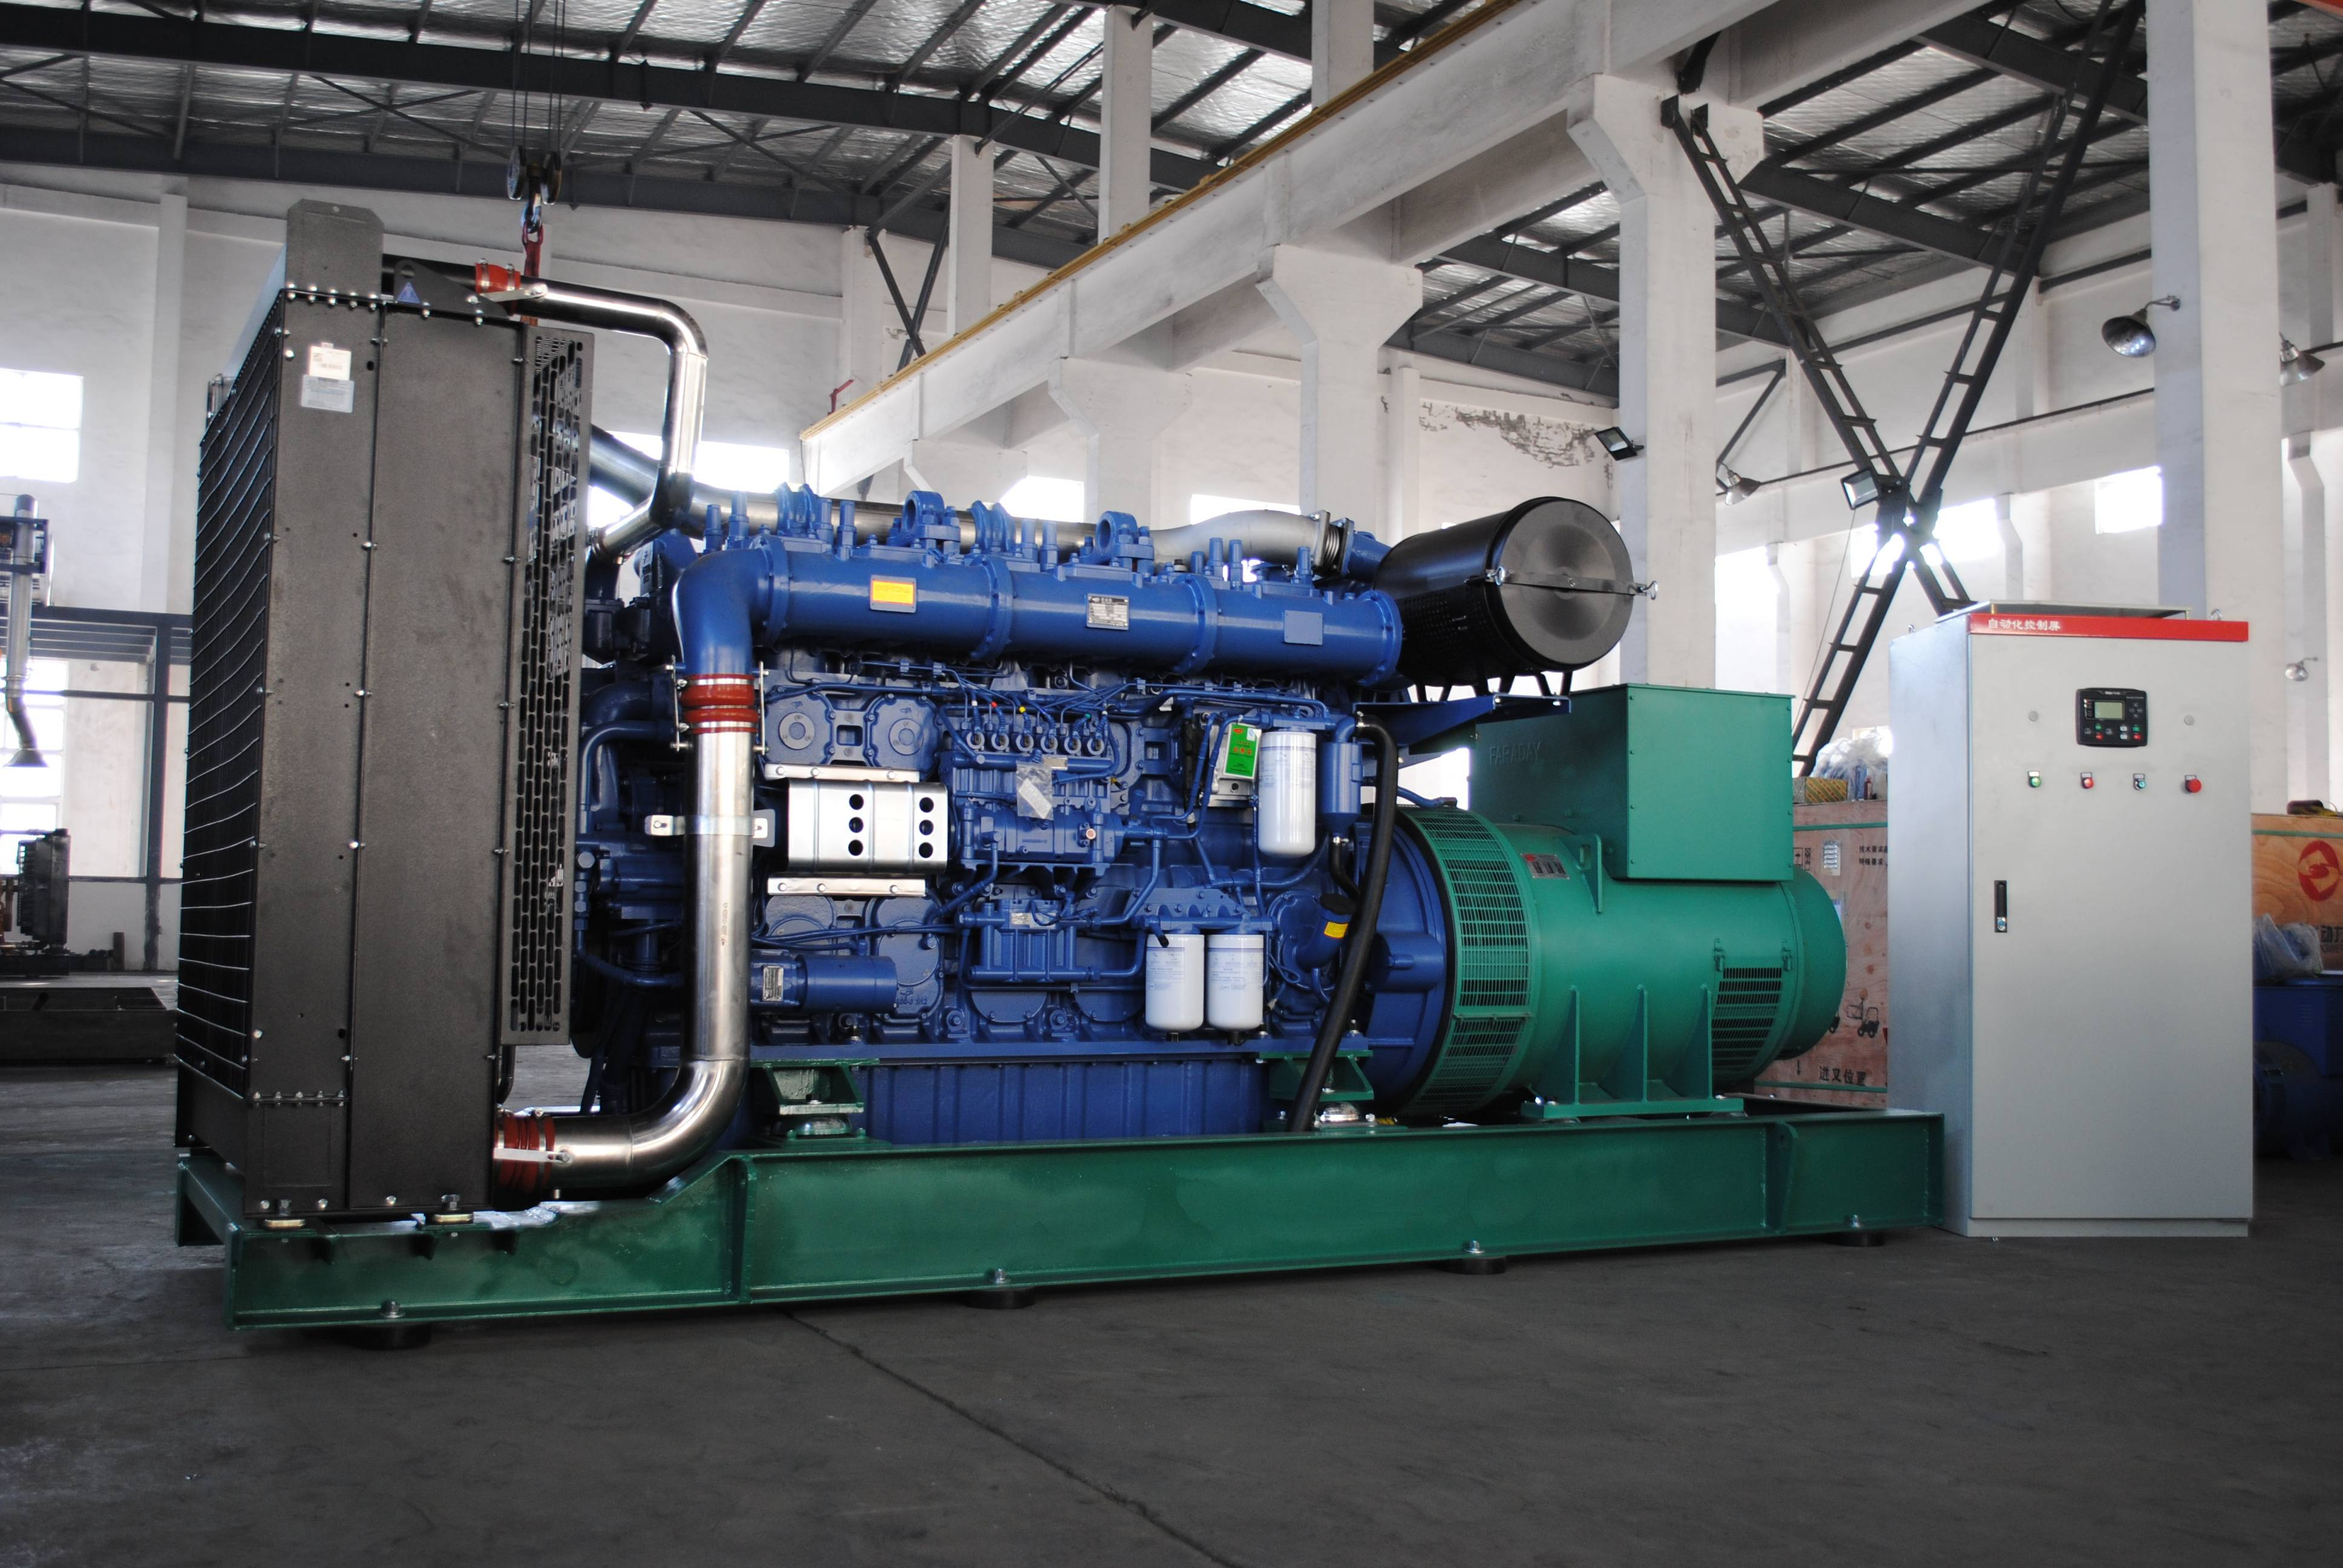 What are the technical requirements for daily fuel tank of diesel generator set?